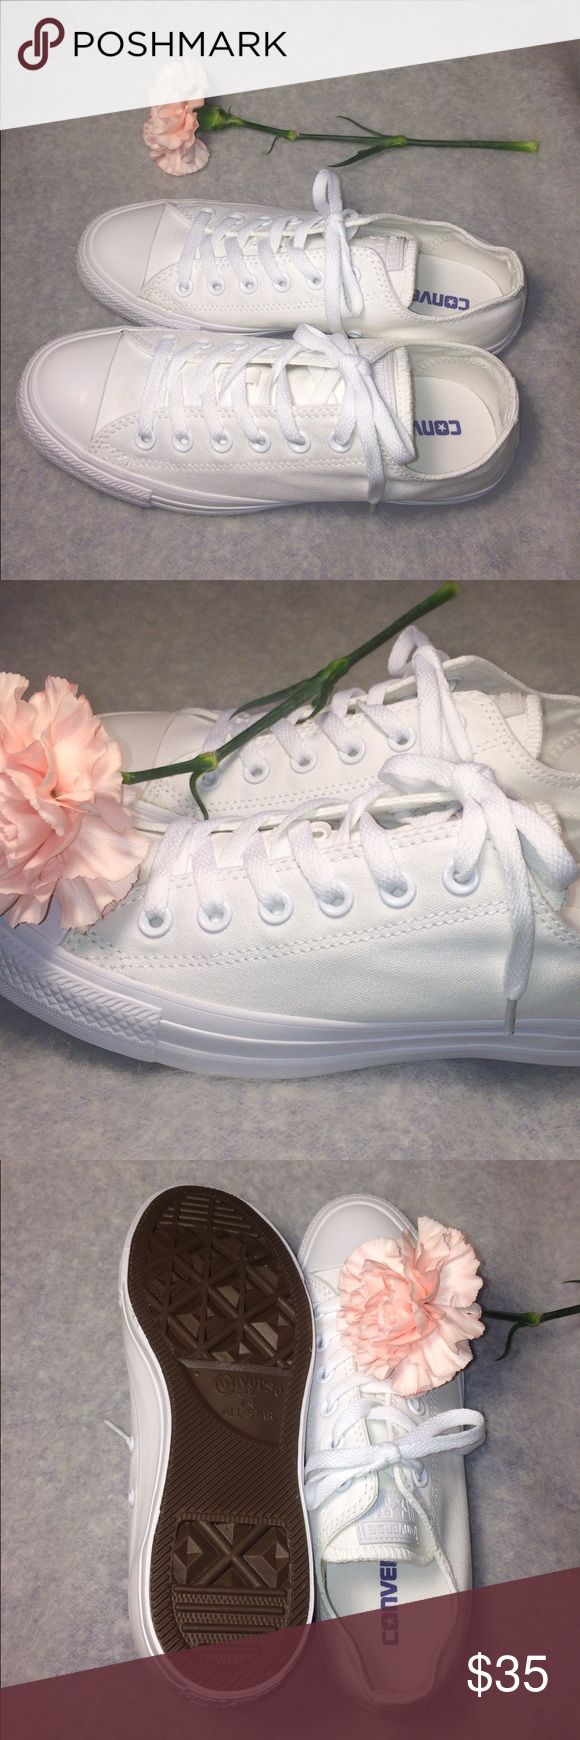 🎉FINAL SALE! CONVERSE SIZE 8 WOMENS WHITE SHOES ✨ All white low top 100% authentic Womens size 8 shoes, in like new condition. Without box. ✨ PRICE IS FIRM! Converse Shoes Sneakers